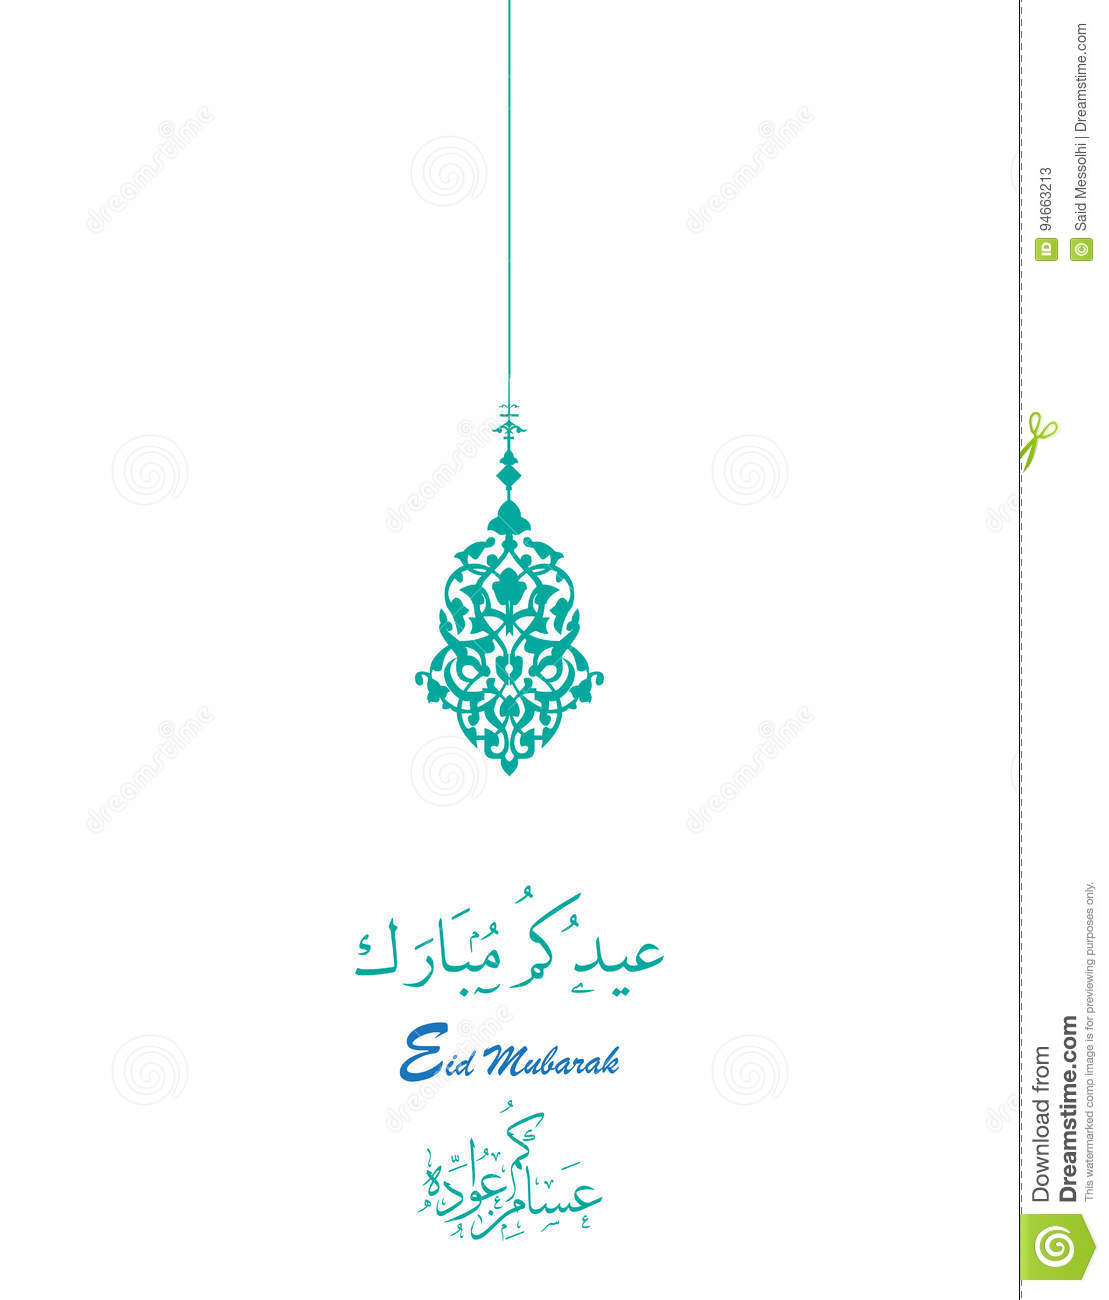 Must see Beautiful Eid Al-Fitr Decorations - greetings-card-occasion-eid-al-fitr-to-muslims-beautiful-islamic-background-arabic-calligraphy-translation-blessed-94663213  Pictures_702815 .jpg